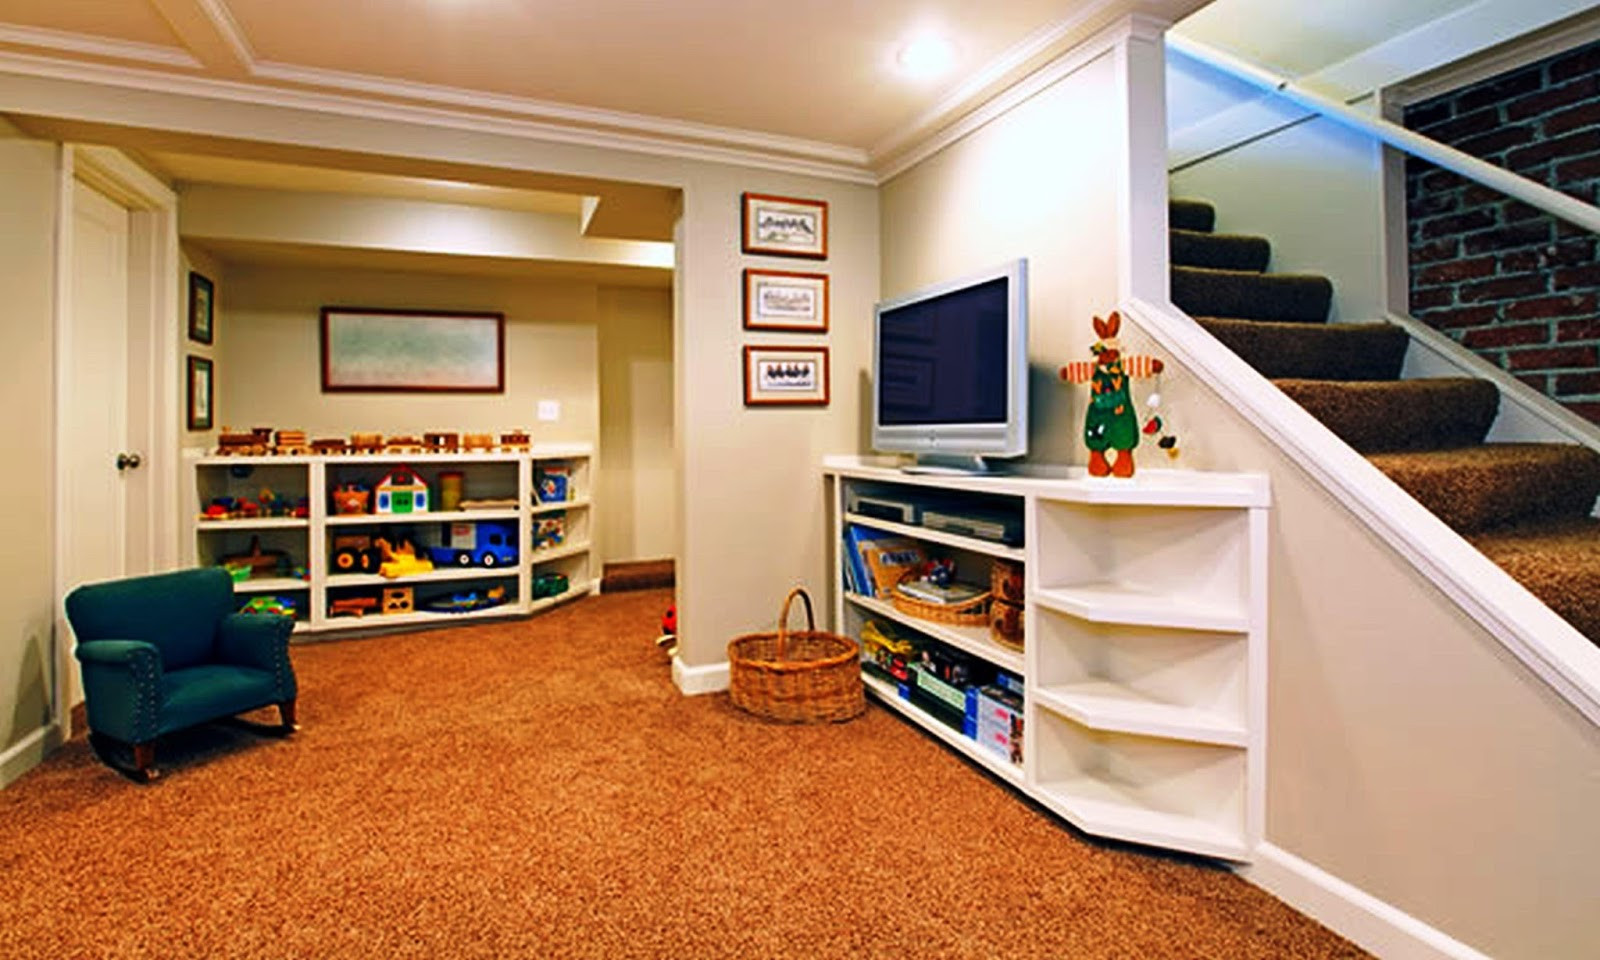 Best ideas about Inexpensive Unfinished Basement Ideas . Save or Pin My Basement Ideas The Coolest Basement Ideas on a Bud Now.